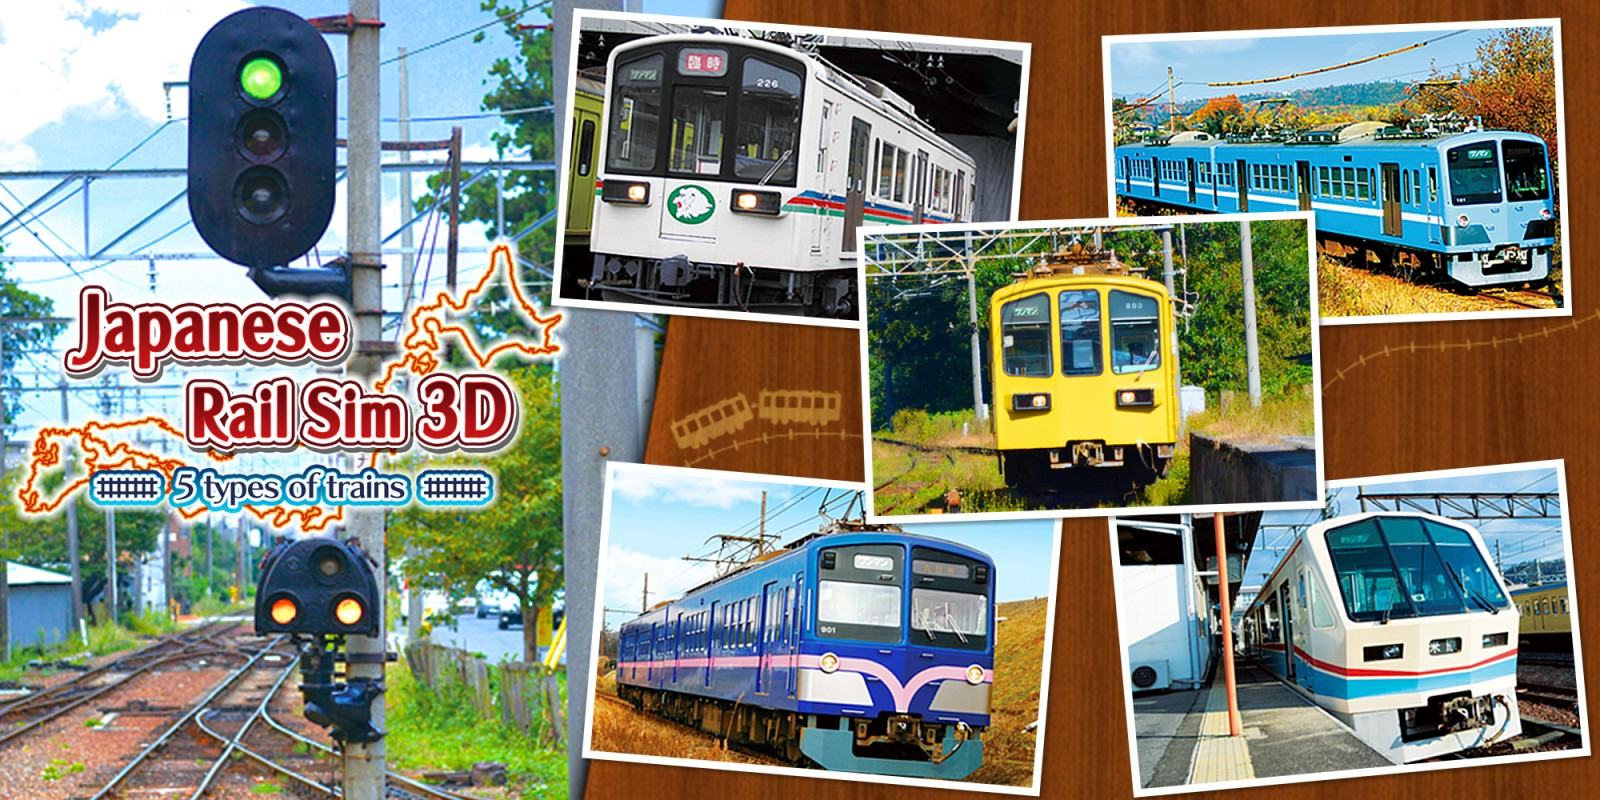 Japanese Rail Sim 3D  5 types of trains